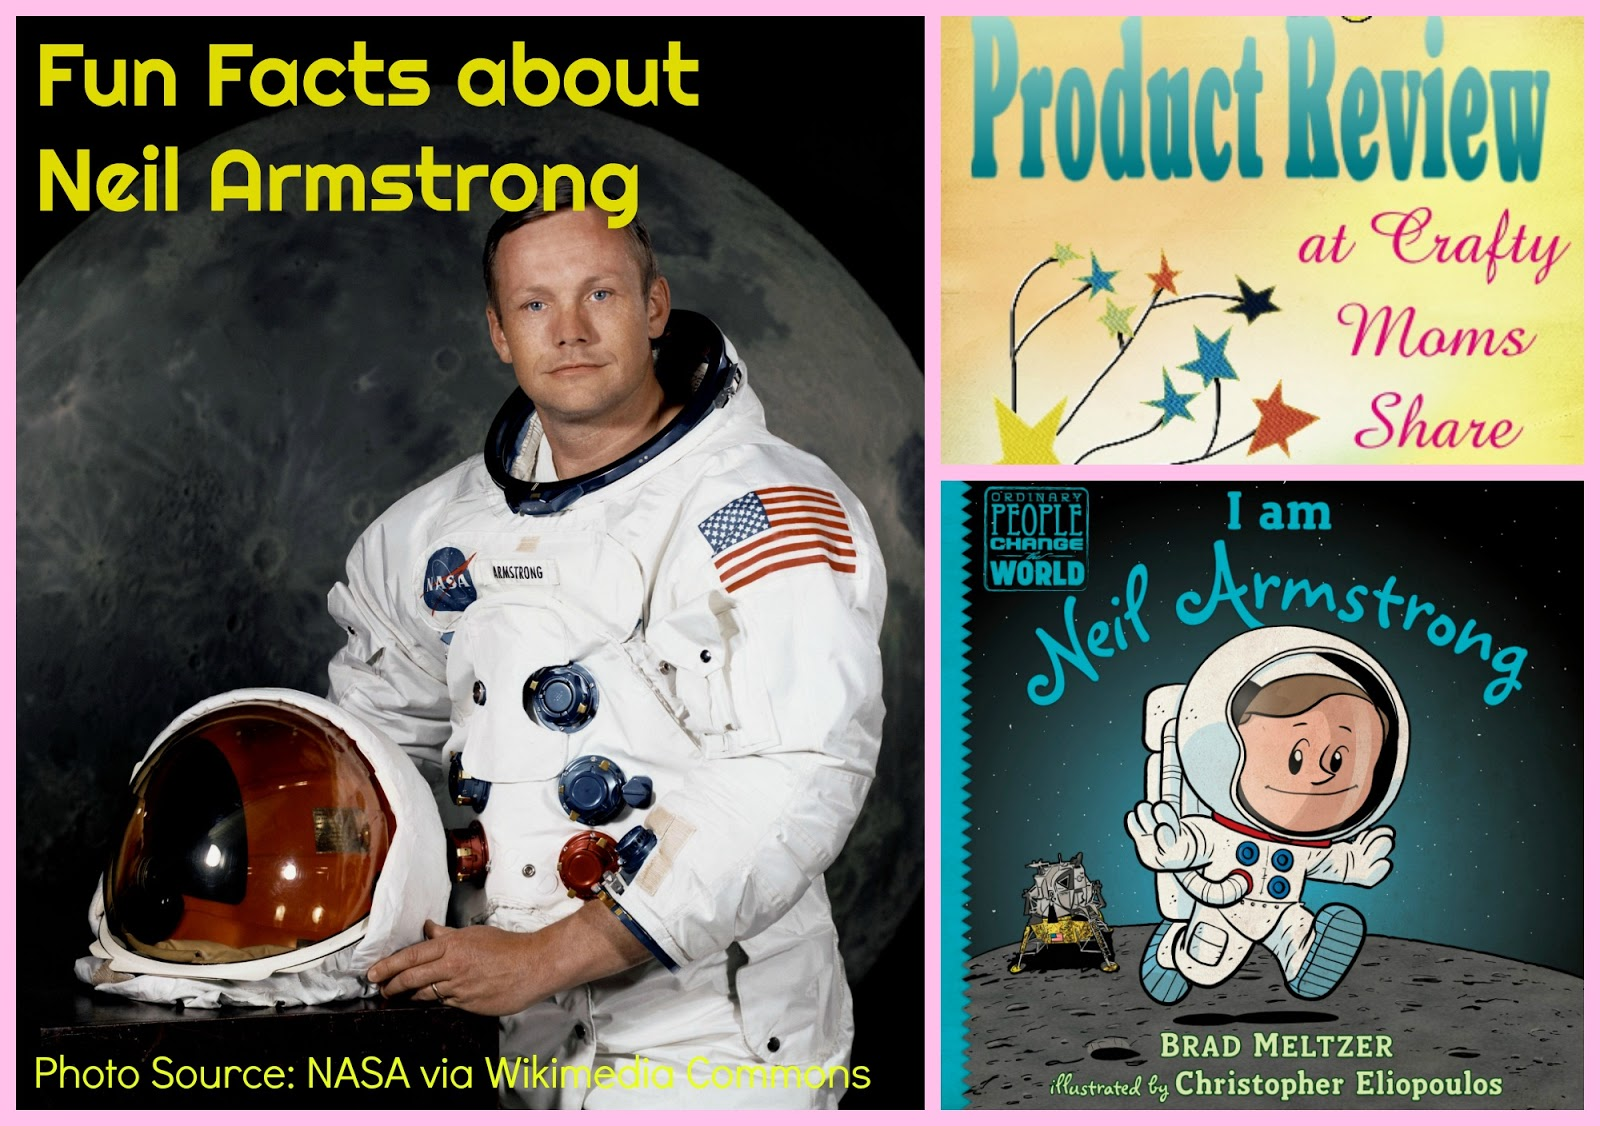 neil armstrong facts 16 interesting facts about neil - 1200×630